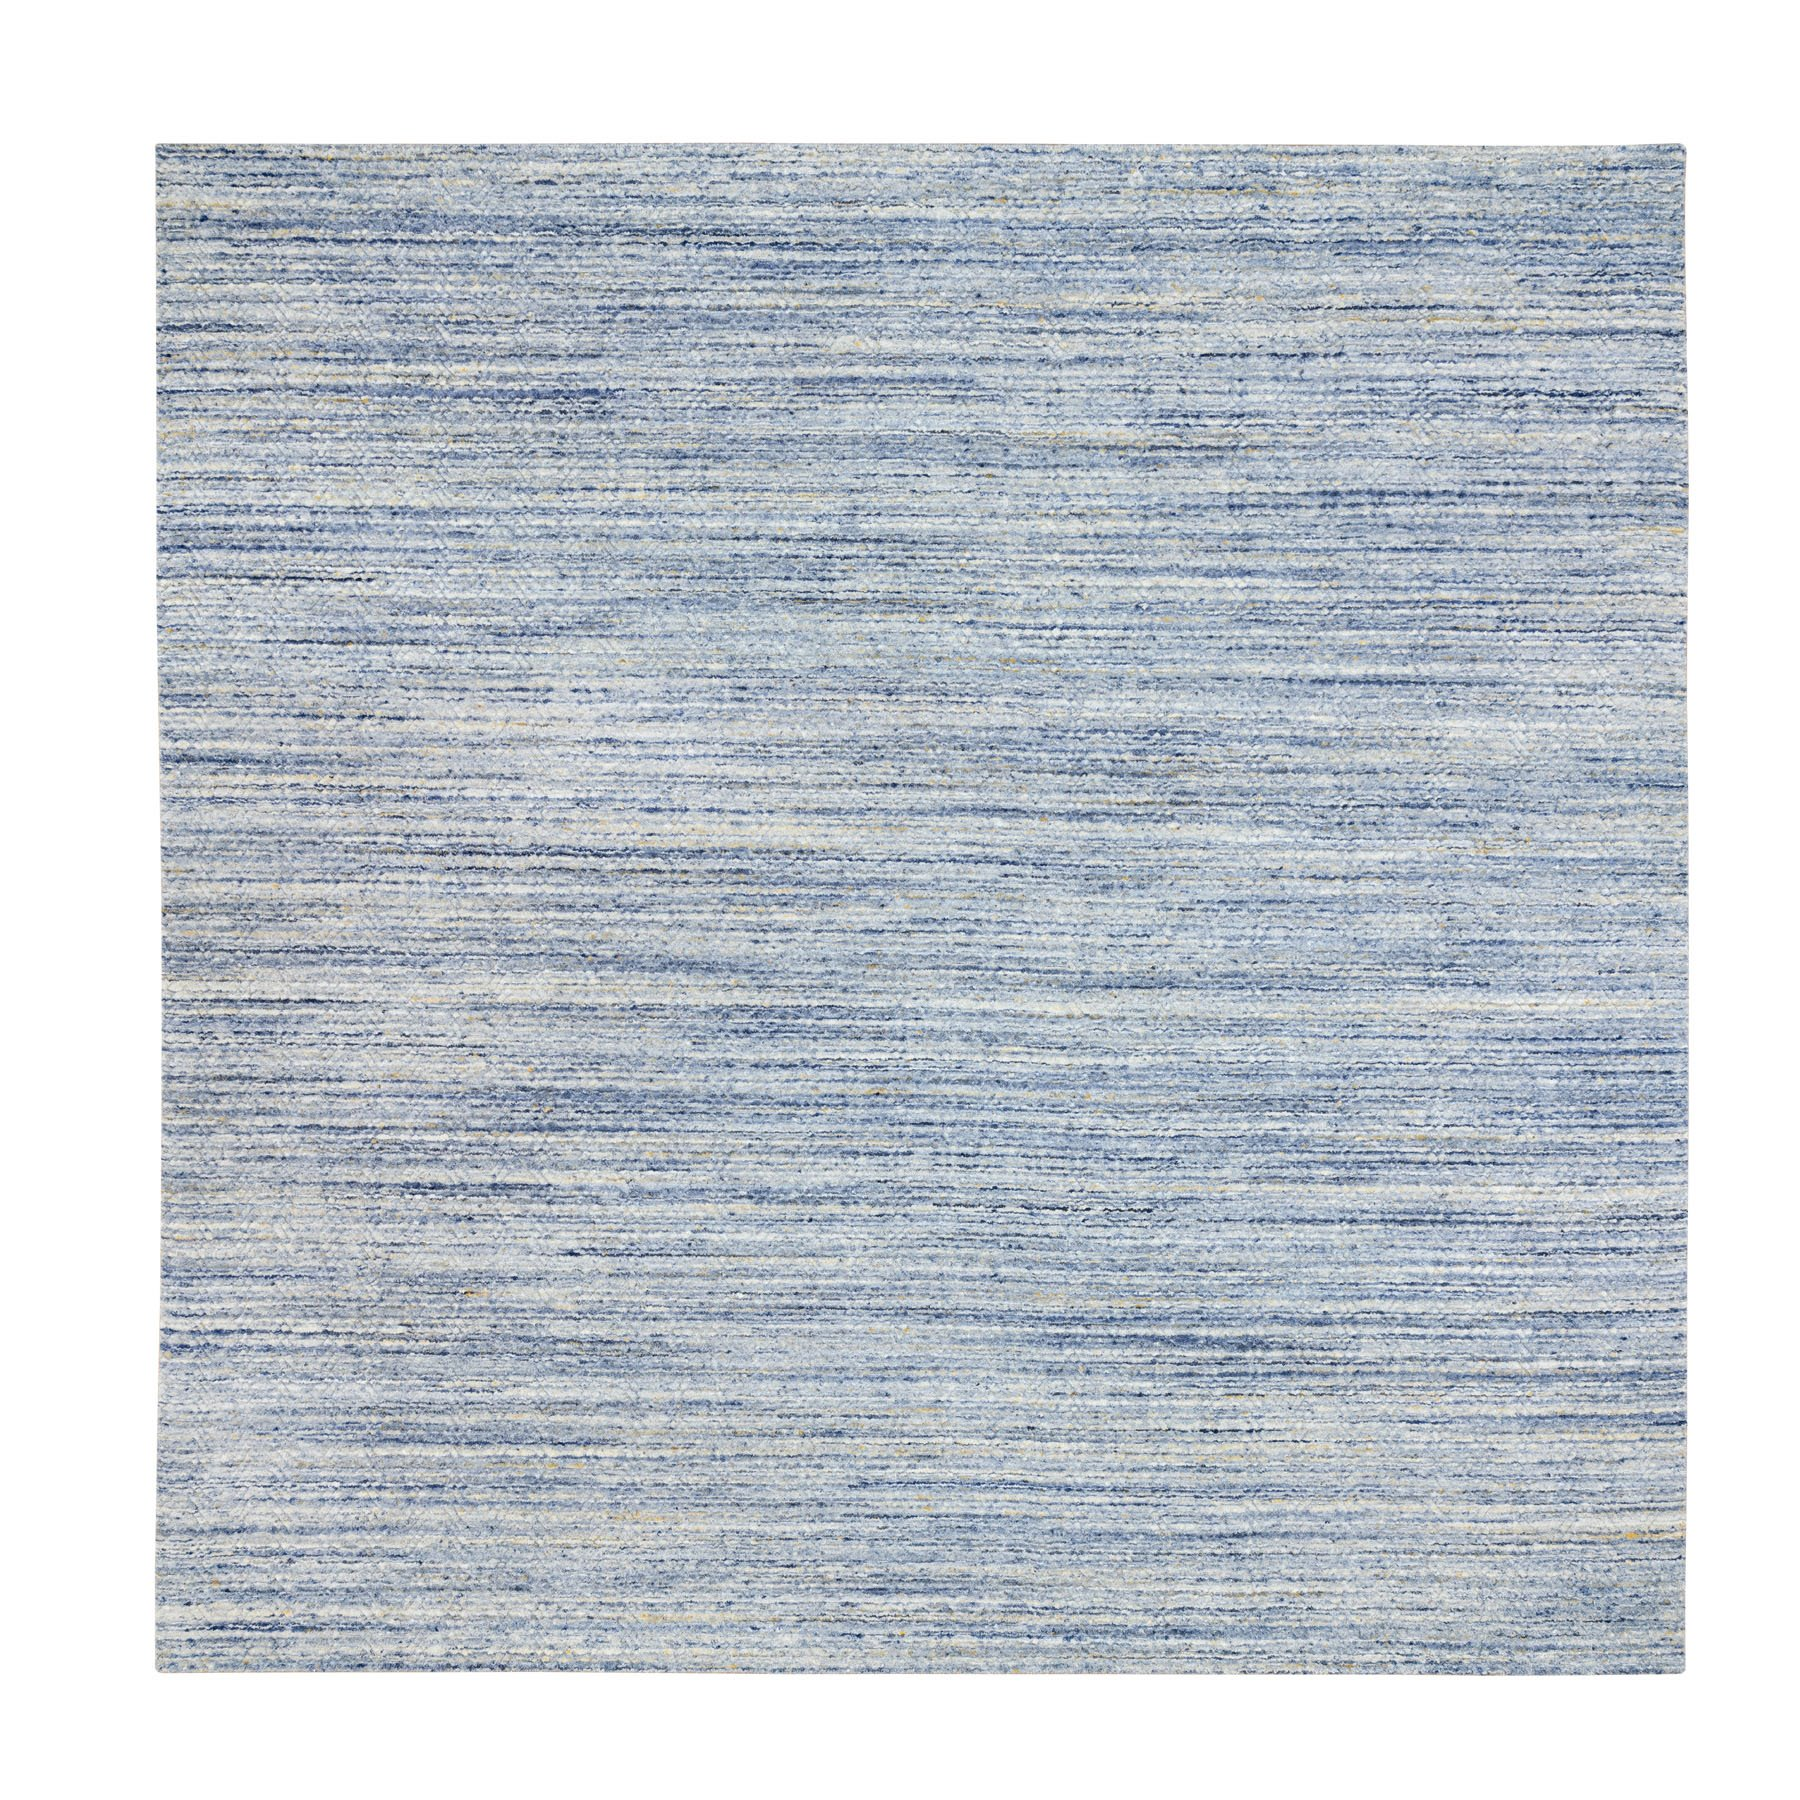 Mid Century Modern Collection Hand Loomed Blue Rug No: 1116850